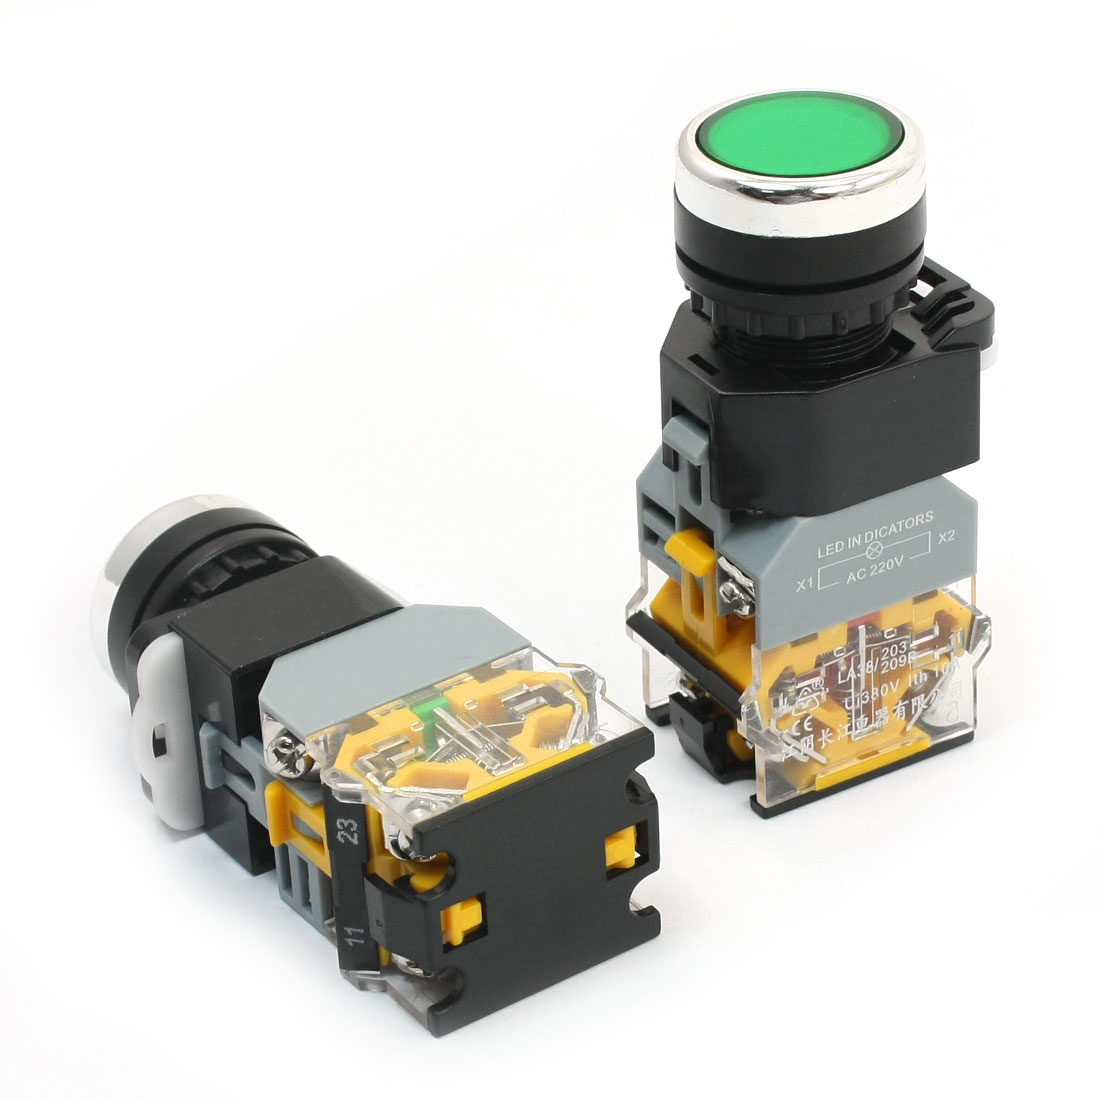 2Pcs Ui 380V Ith 10A 22mm Thread Panel Mounting Green Light DPST 1NO 1NC 6 Screw Terminals Momentary Plastic Push Button Switch